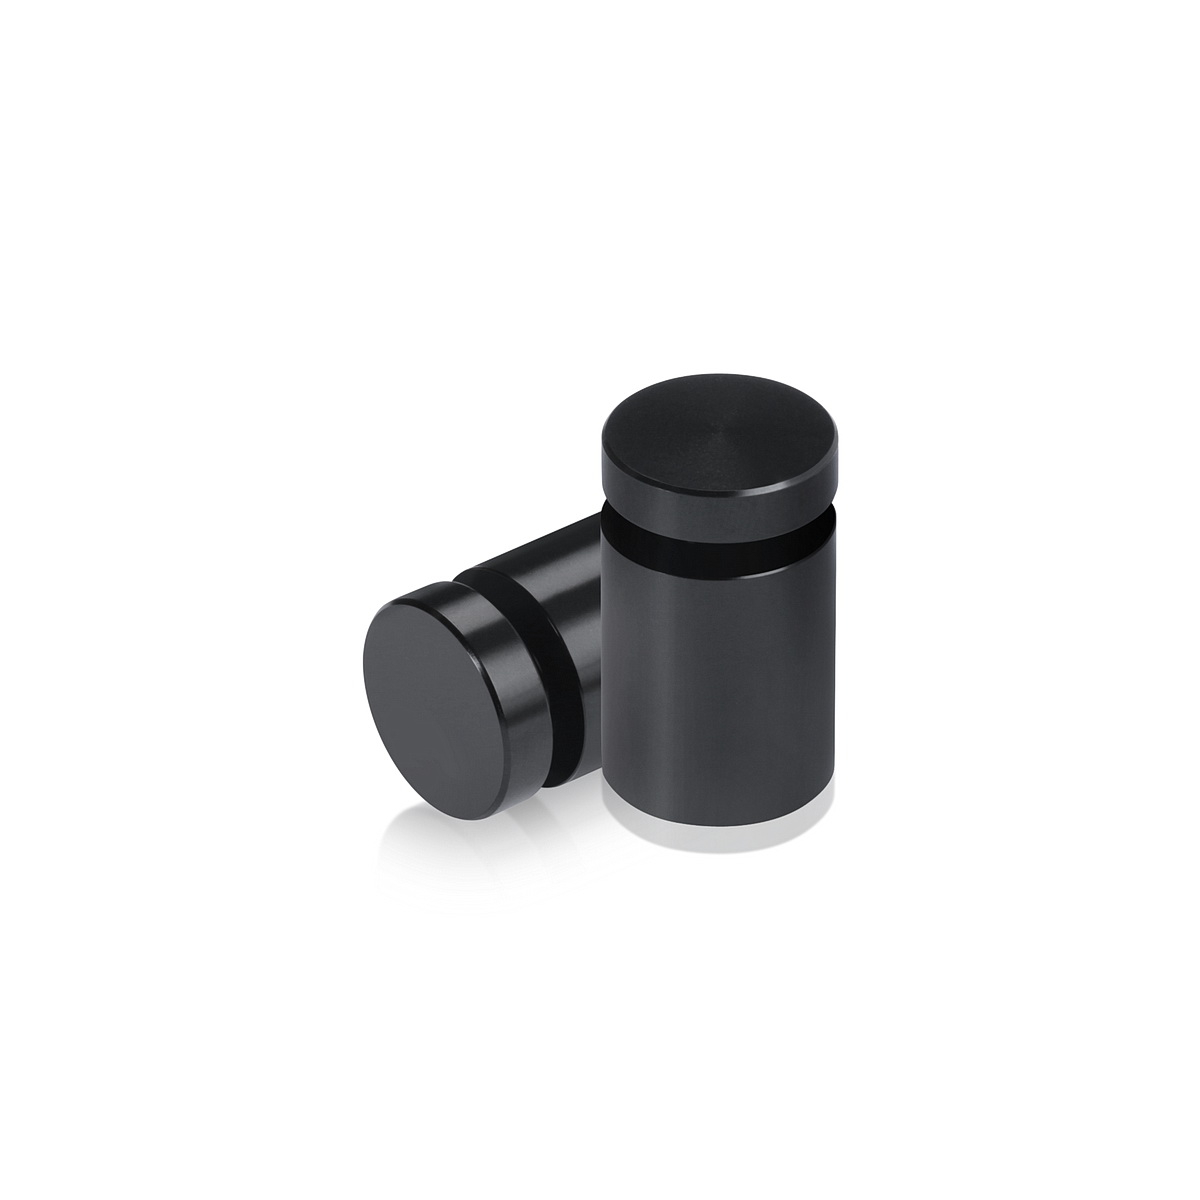 Affordable Aluminum Standoffs, Diameter: 5/8'', Standoff:  3/4'', Aluminum Black Finish